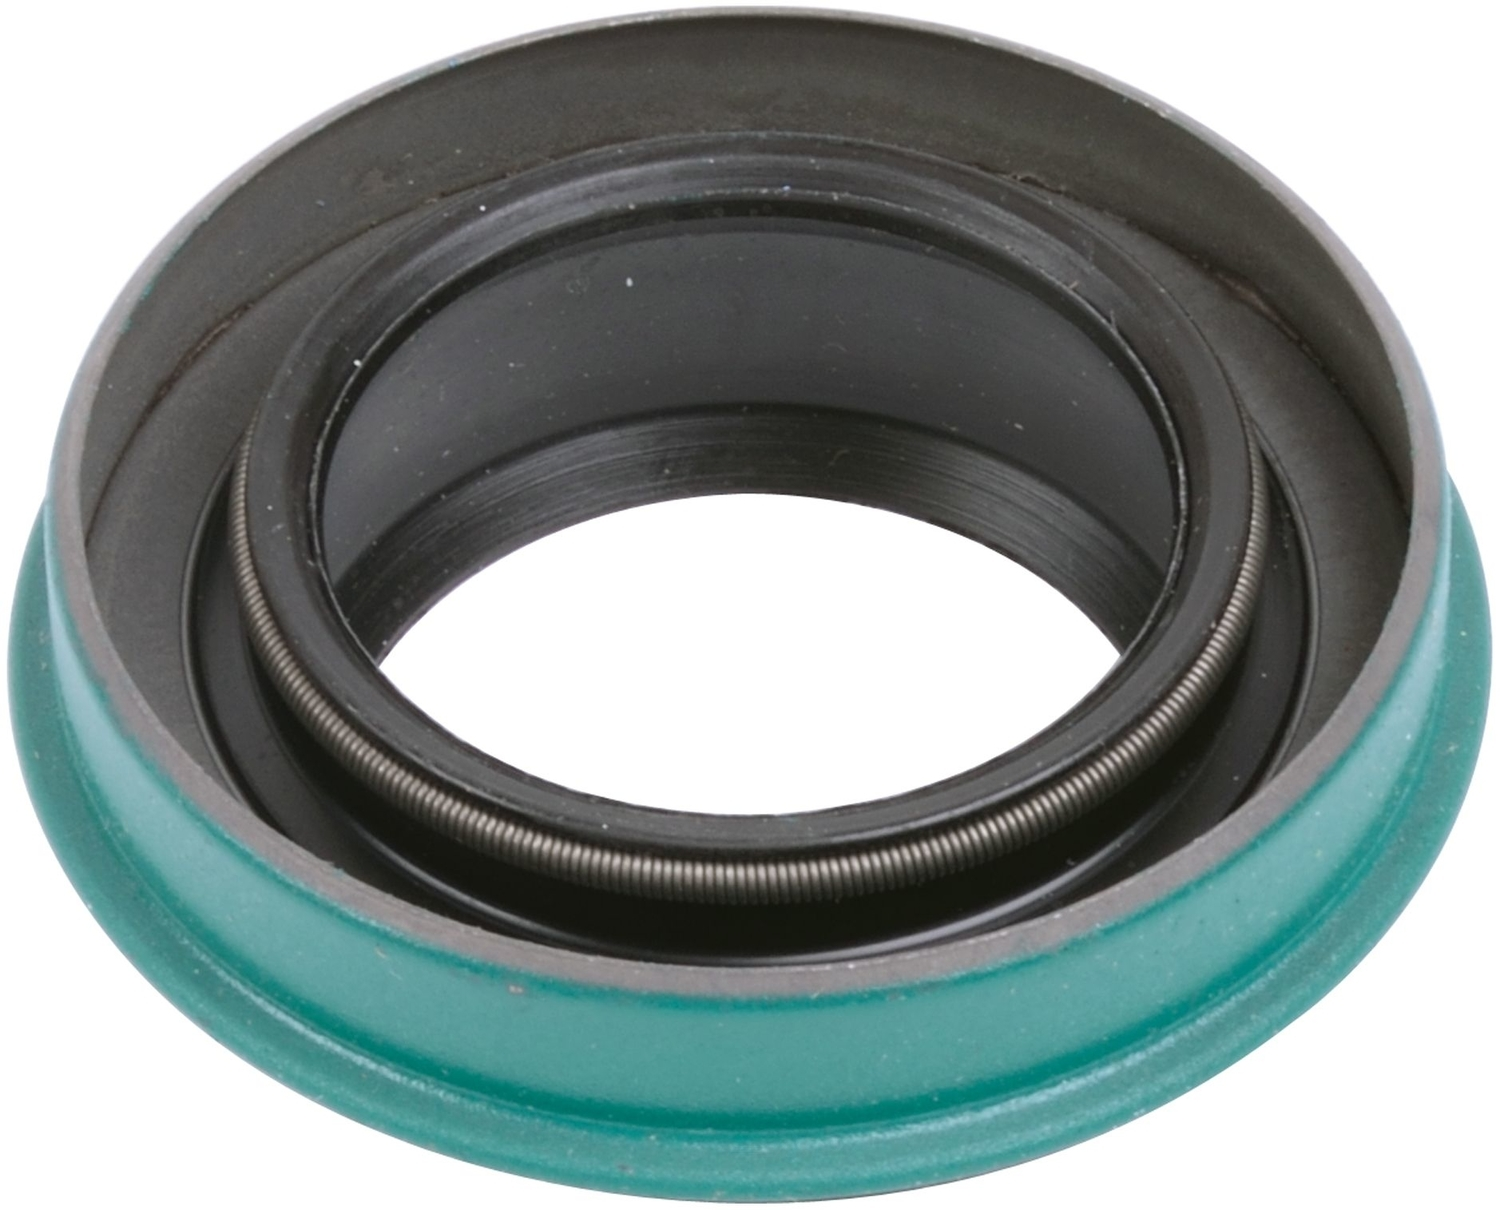 SKF (CHICAGO RAWHIDE) - Manual Trans Output Shaft Seal - SKF 14978